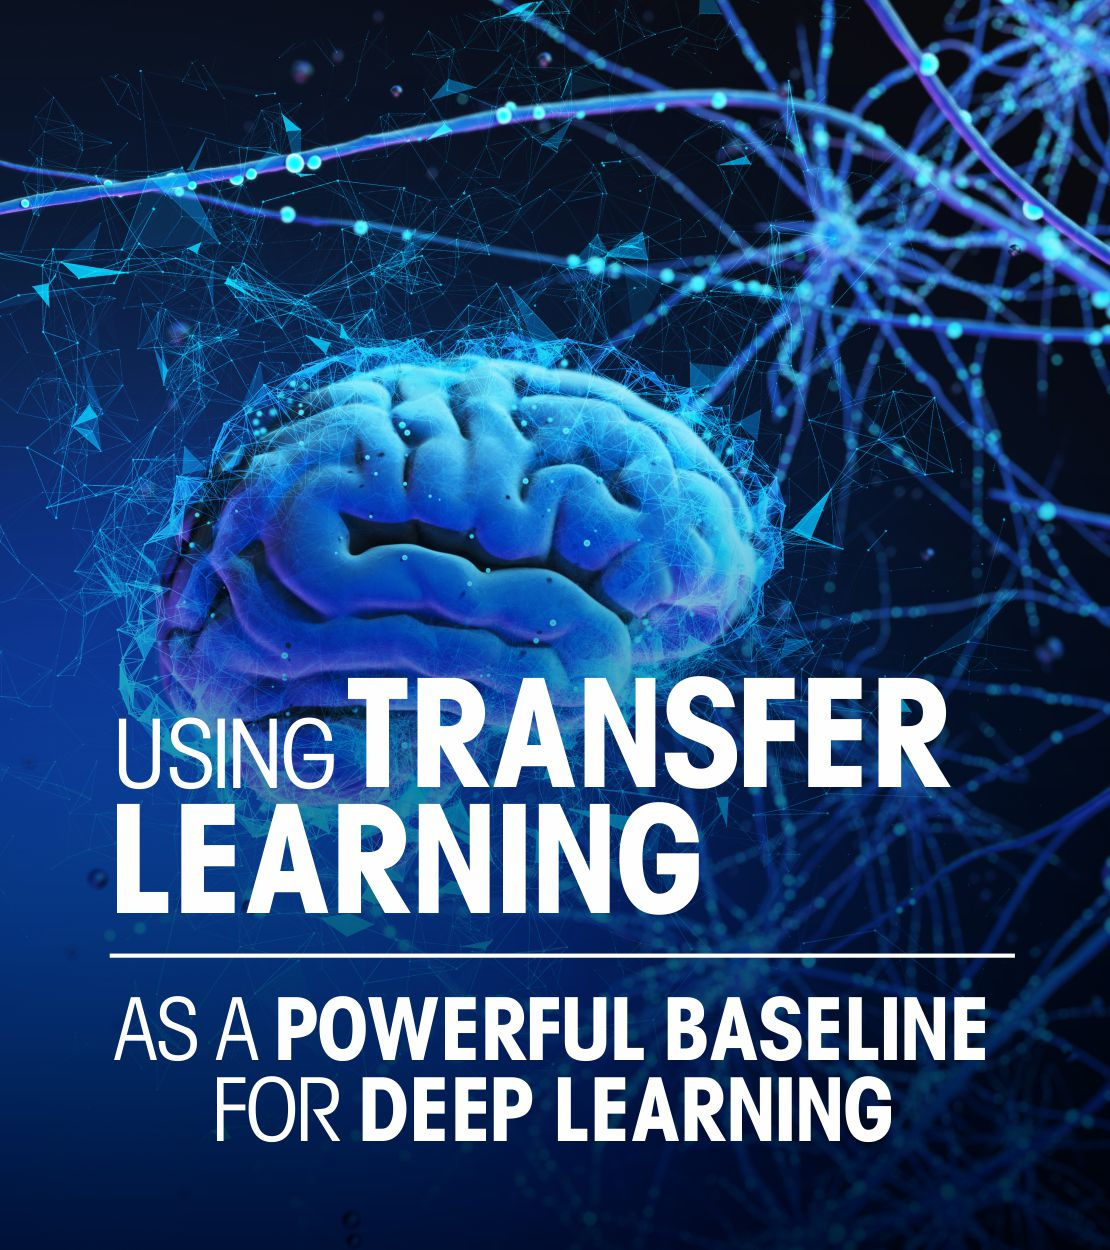 using-transfer-learning-thumbnail.jpg